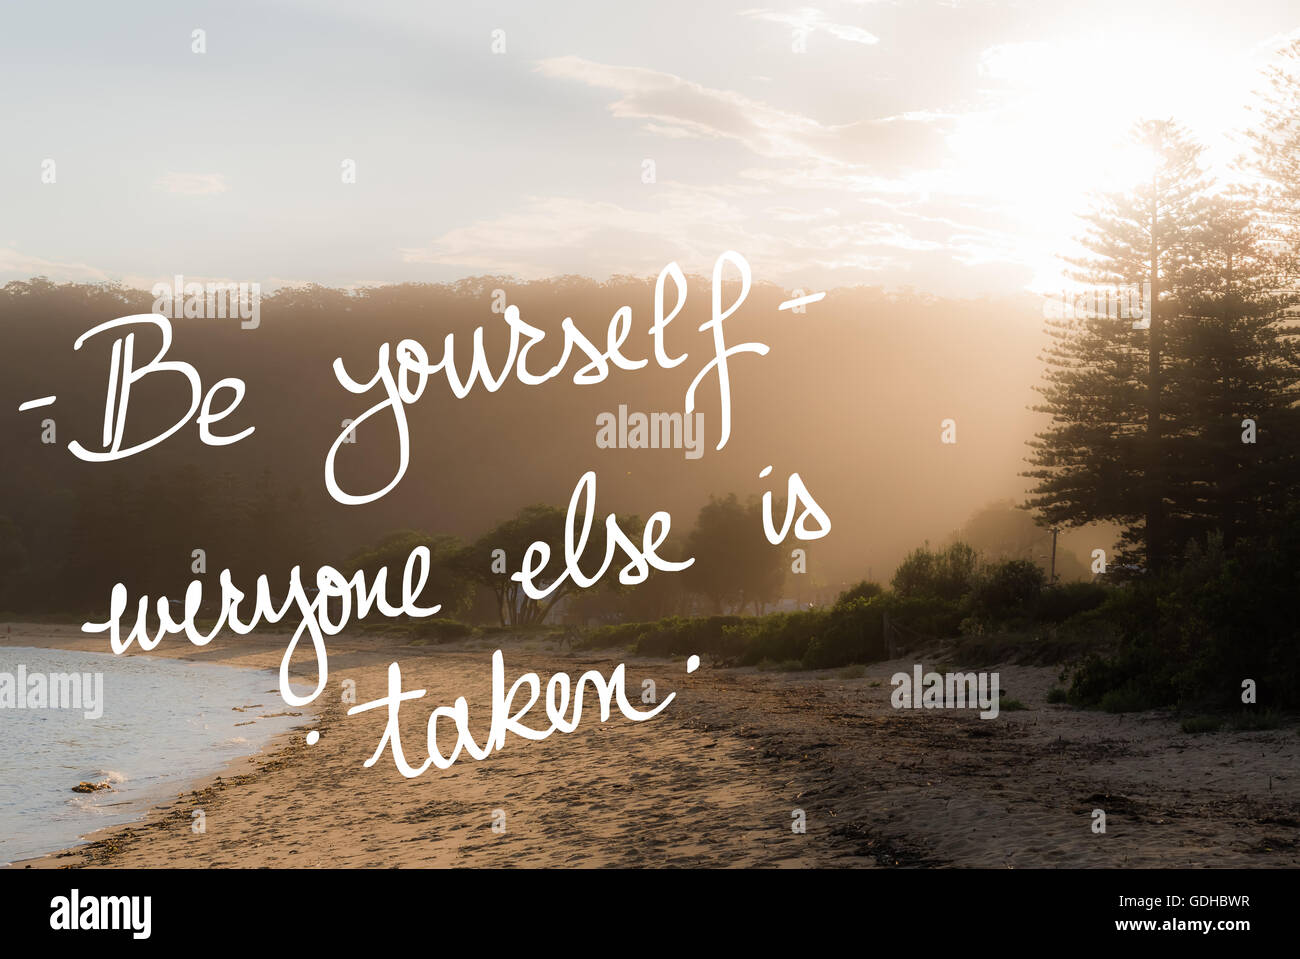 Be Yourself, Everyone Else Is Taken message. Handwritten motivational text over sunset calm sunny beach background - Stock Image